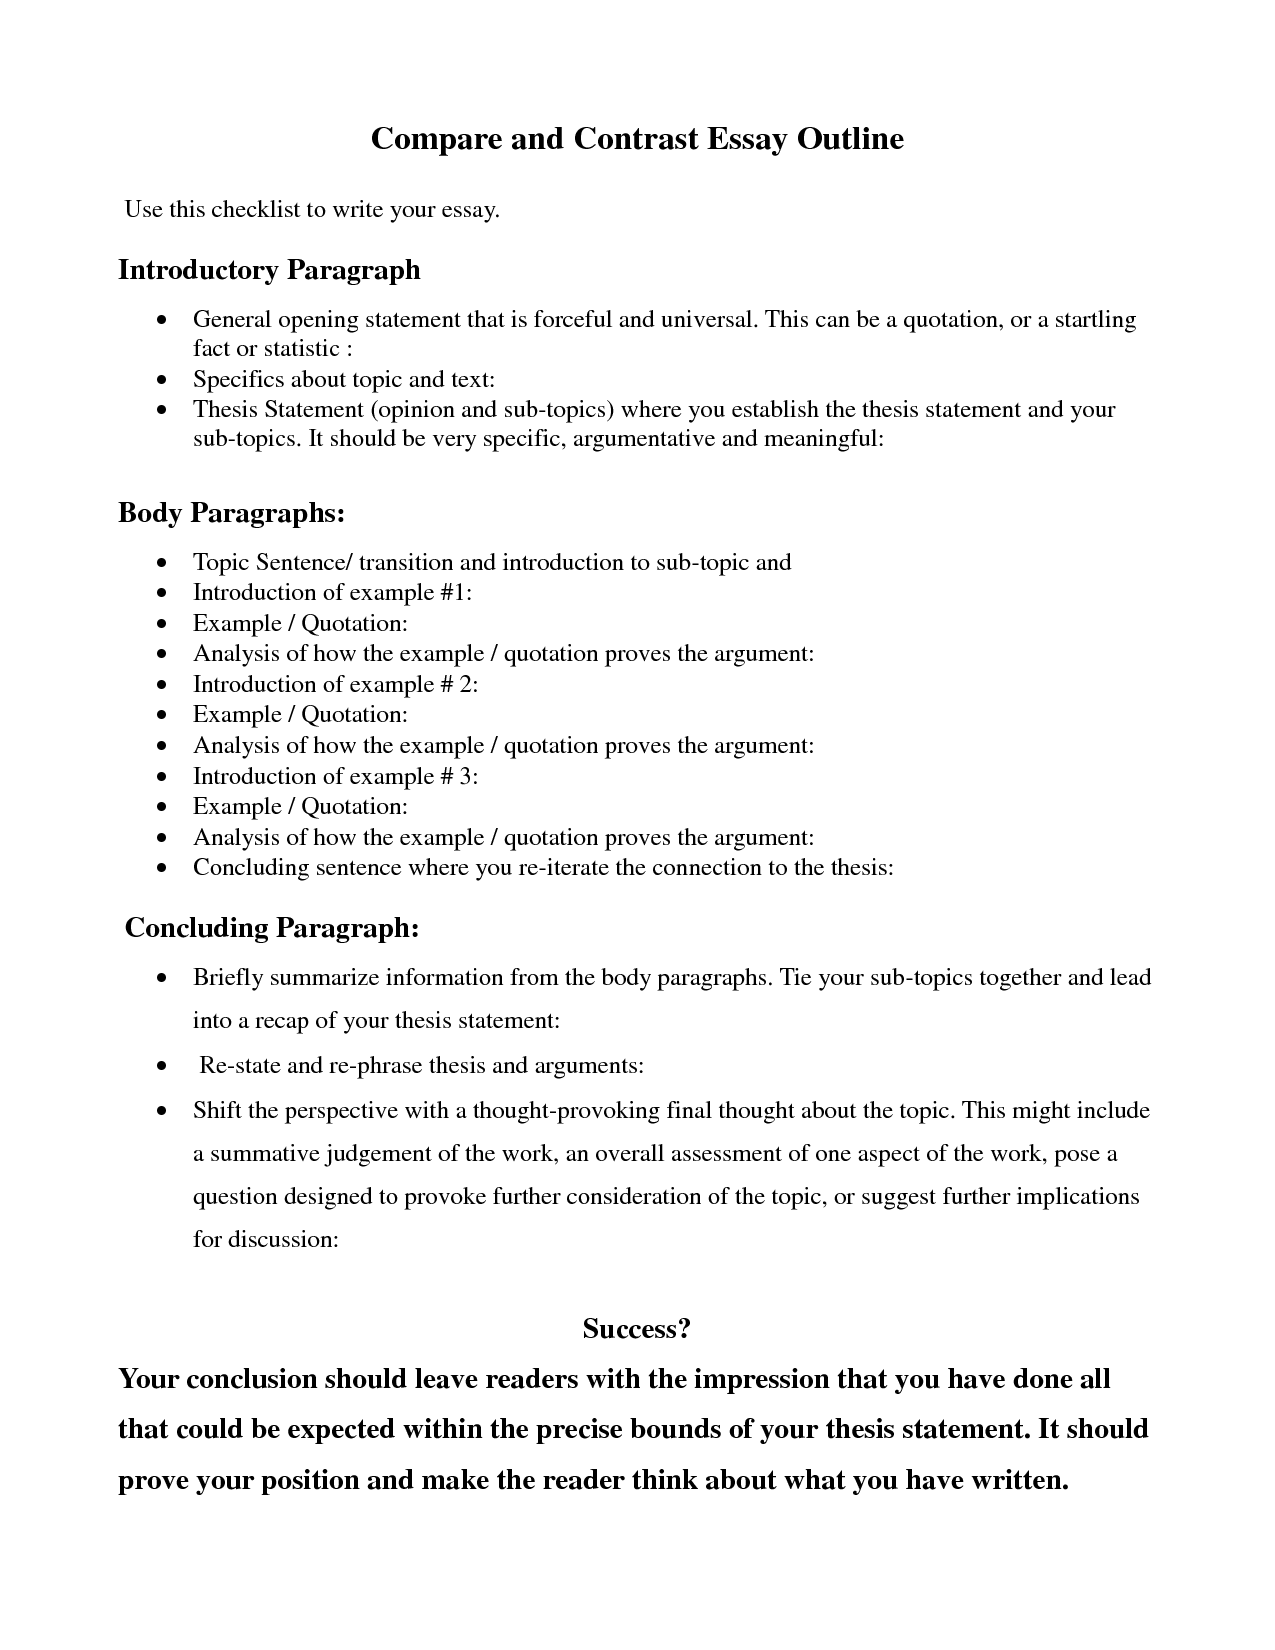 comparecontrast essay outline google search - Art College Essay Examples